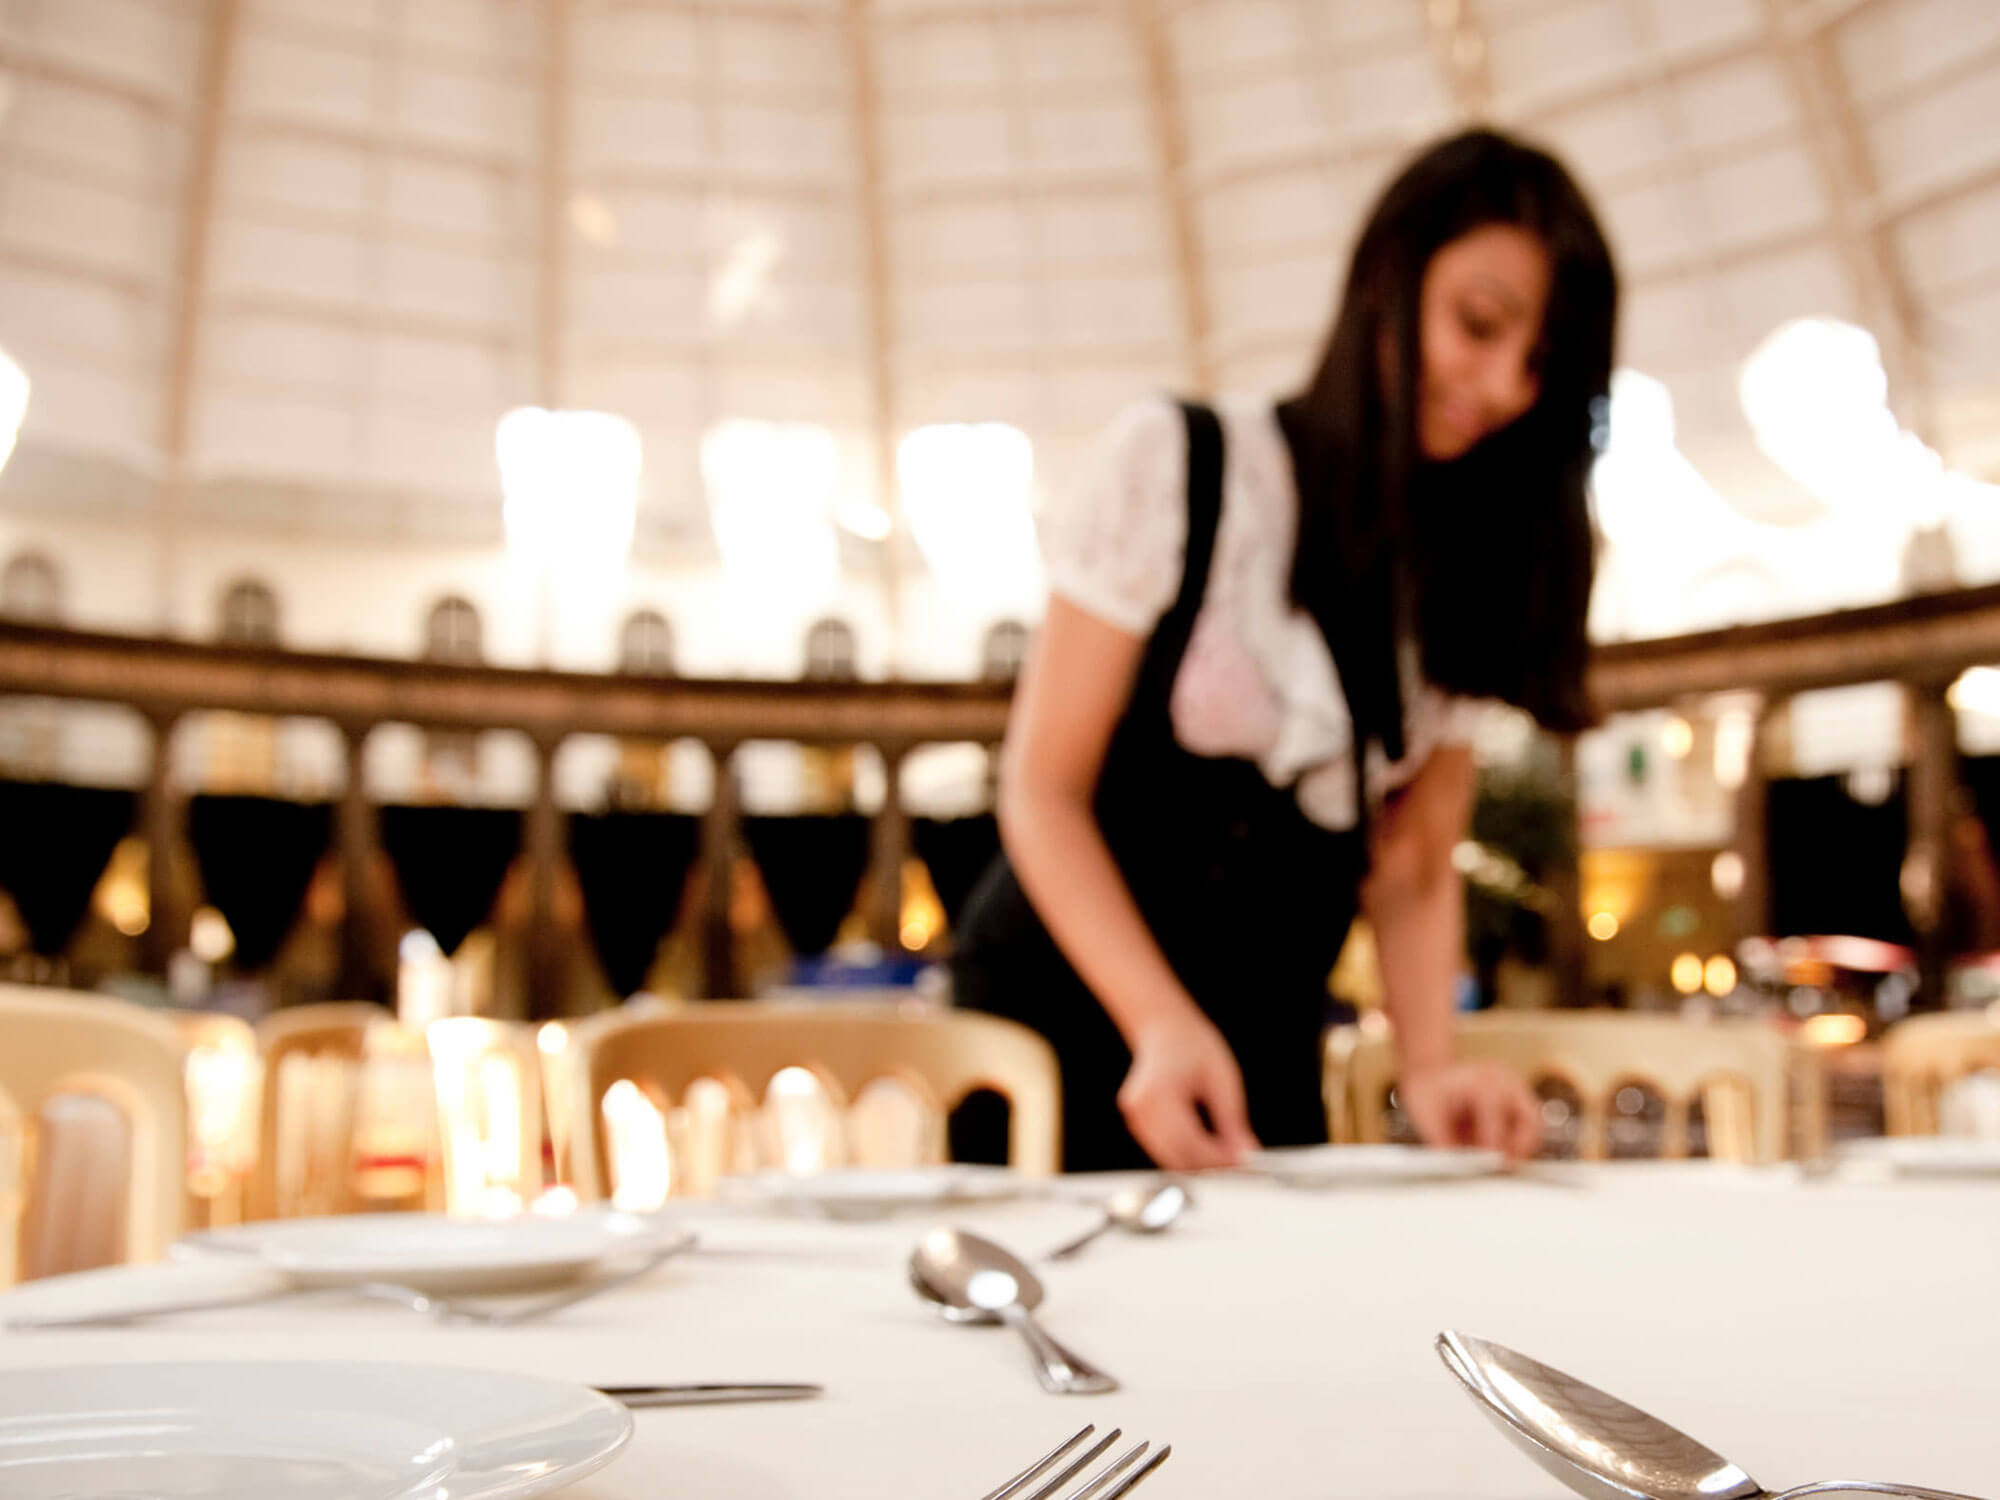 Hospitality student setting a table at an event